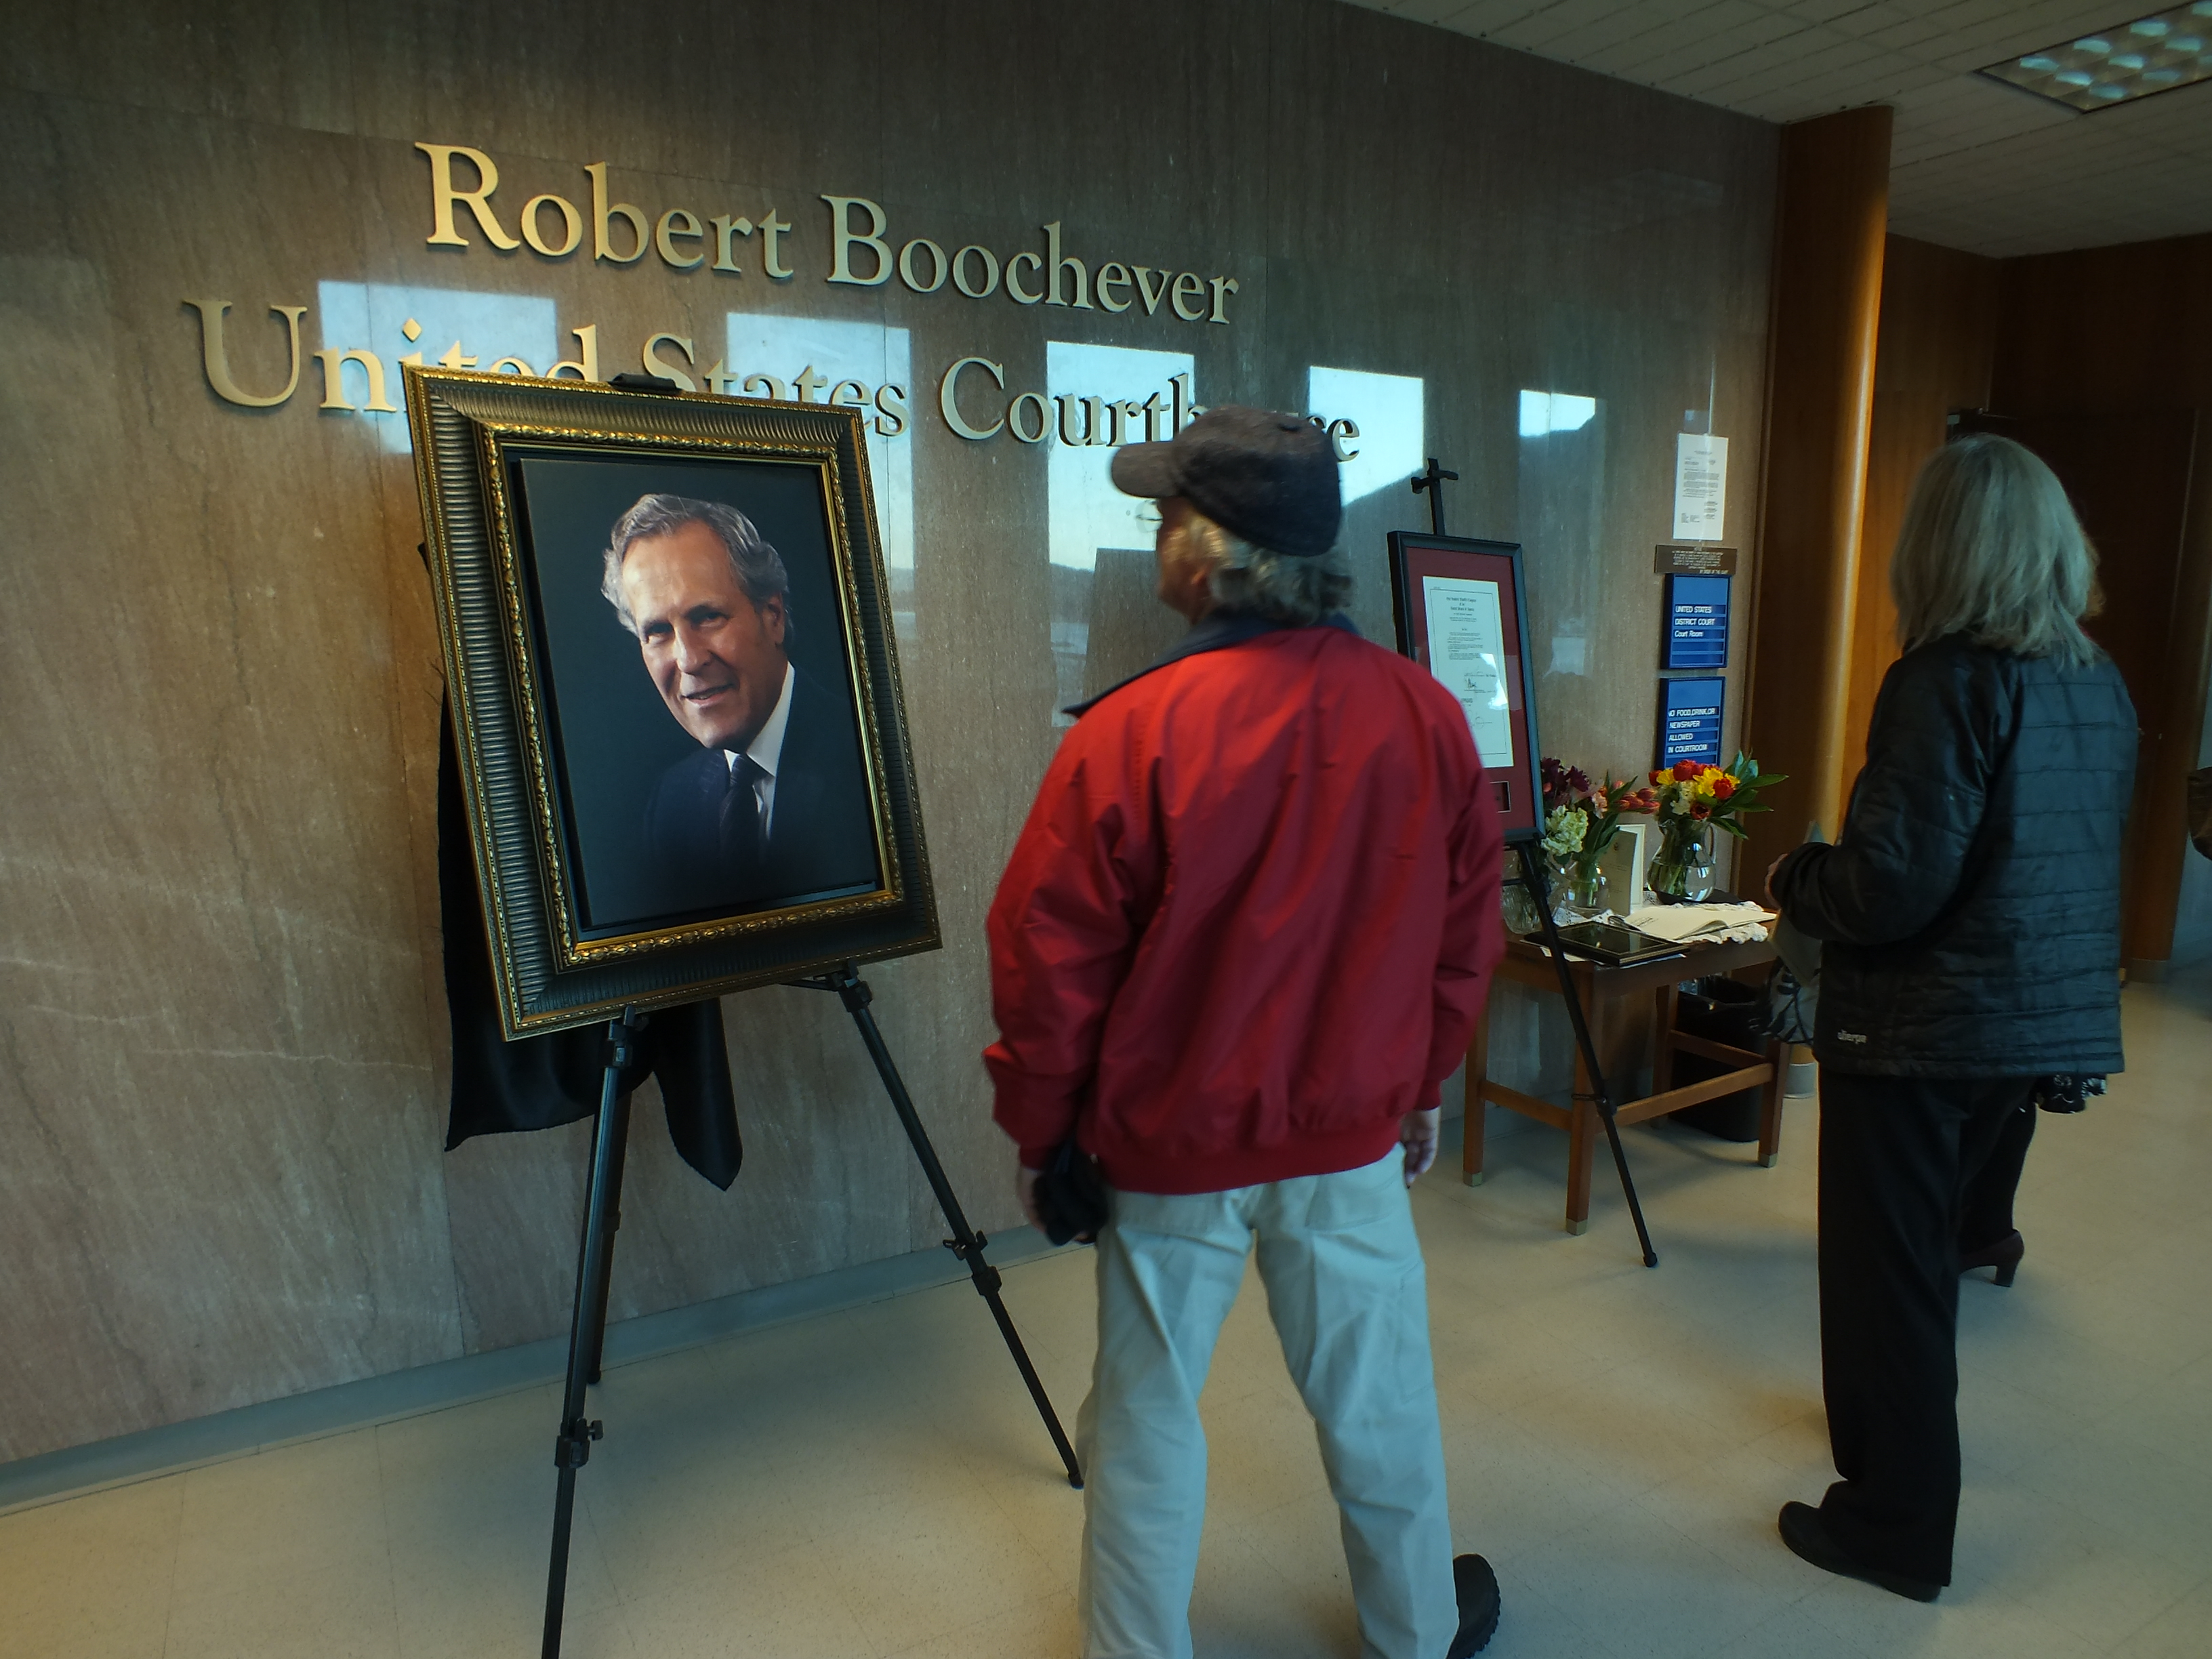 Robert Boochever U.S. Courthouse is located on the ninth floor of the Hurff Ackerman Saunders Federal Building in downtown Juneau.  (Photo by Matt Miller/KTOO)